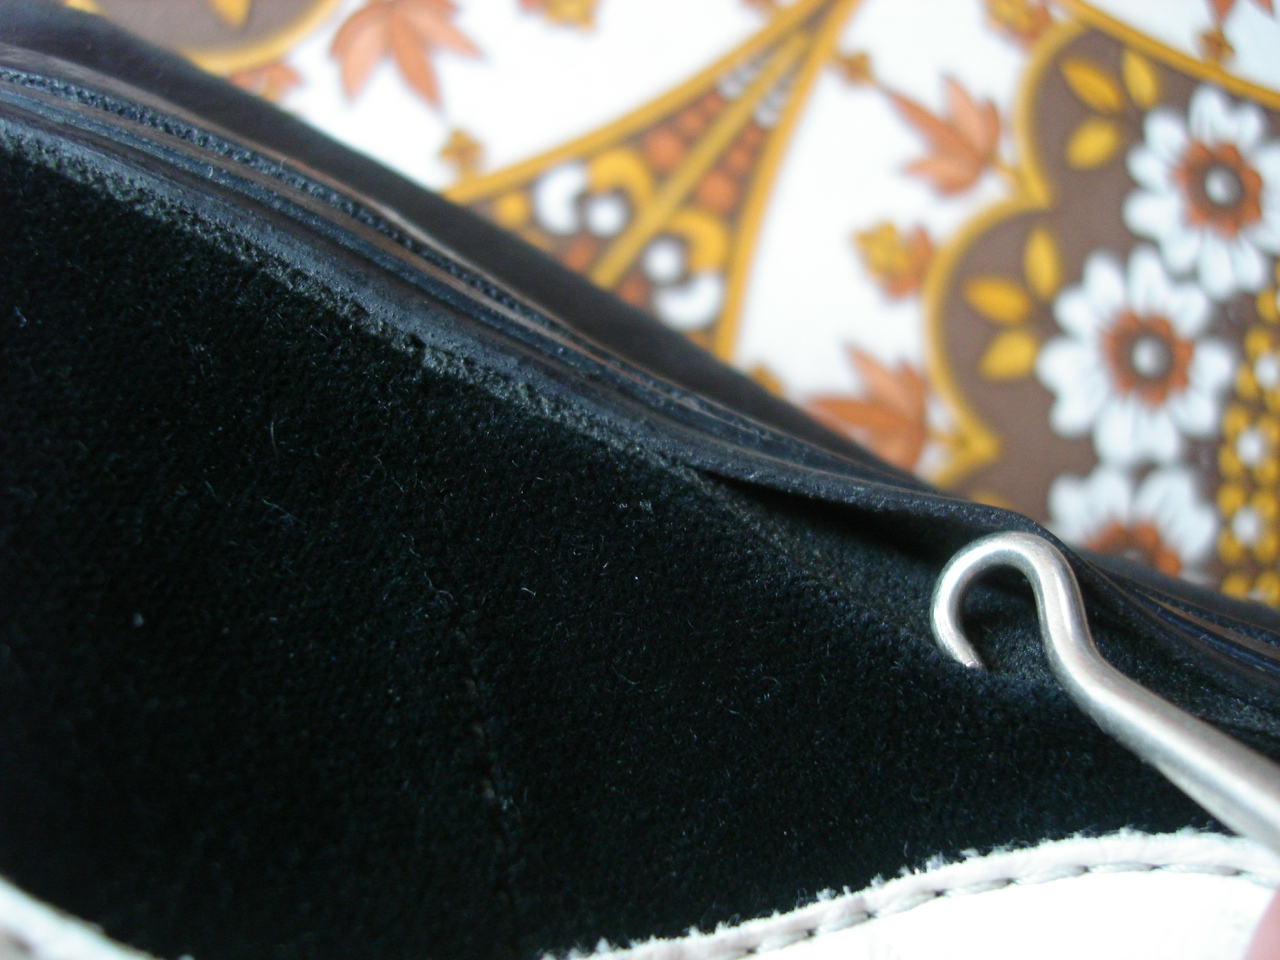 b78e46d2859c http   theothersideofthepillow.bigcartel.com product vintage-vans-custom- black-suede-velvet-sk8-hi-style-38-made-in-usa-1990-s-off-the-wall-us7-5